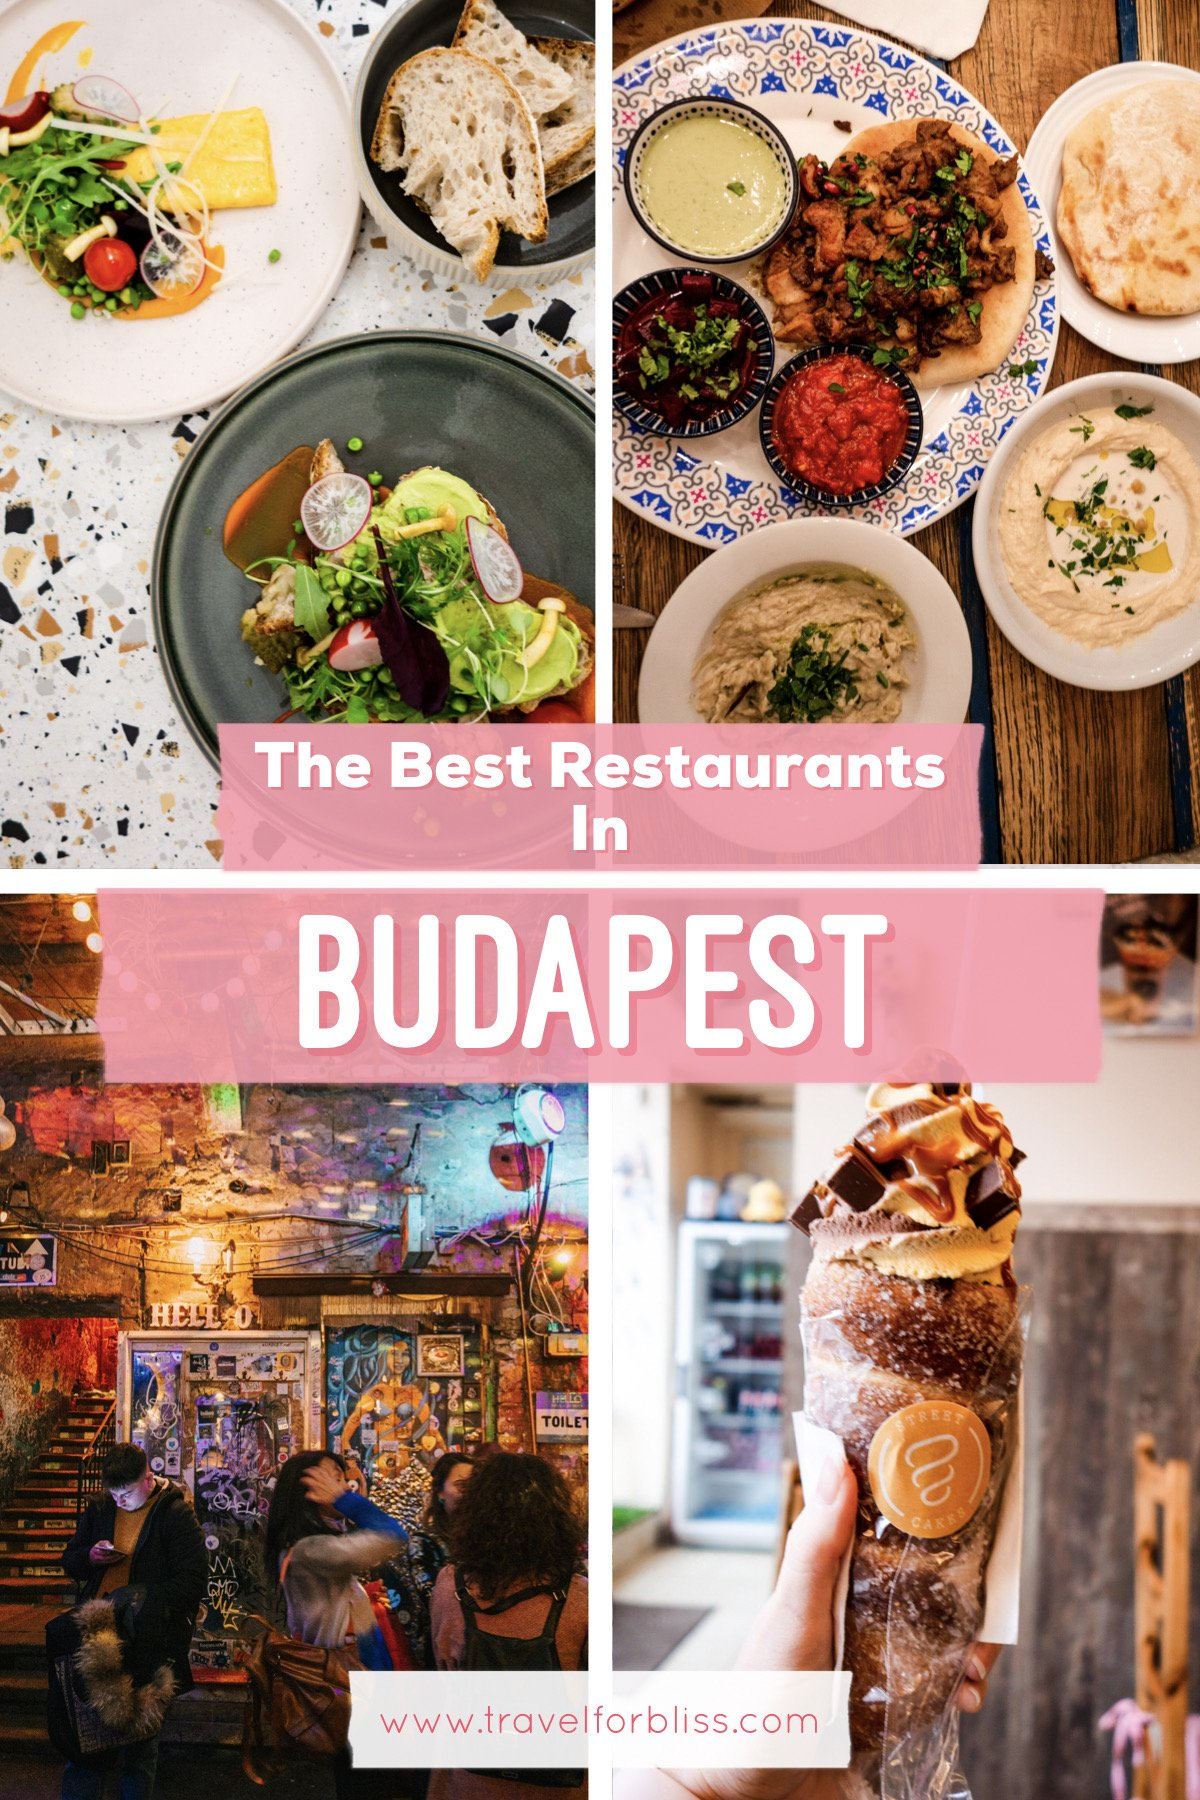 The Best Restaurants In Budapest. Where to eat in Budapest Hungary